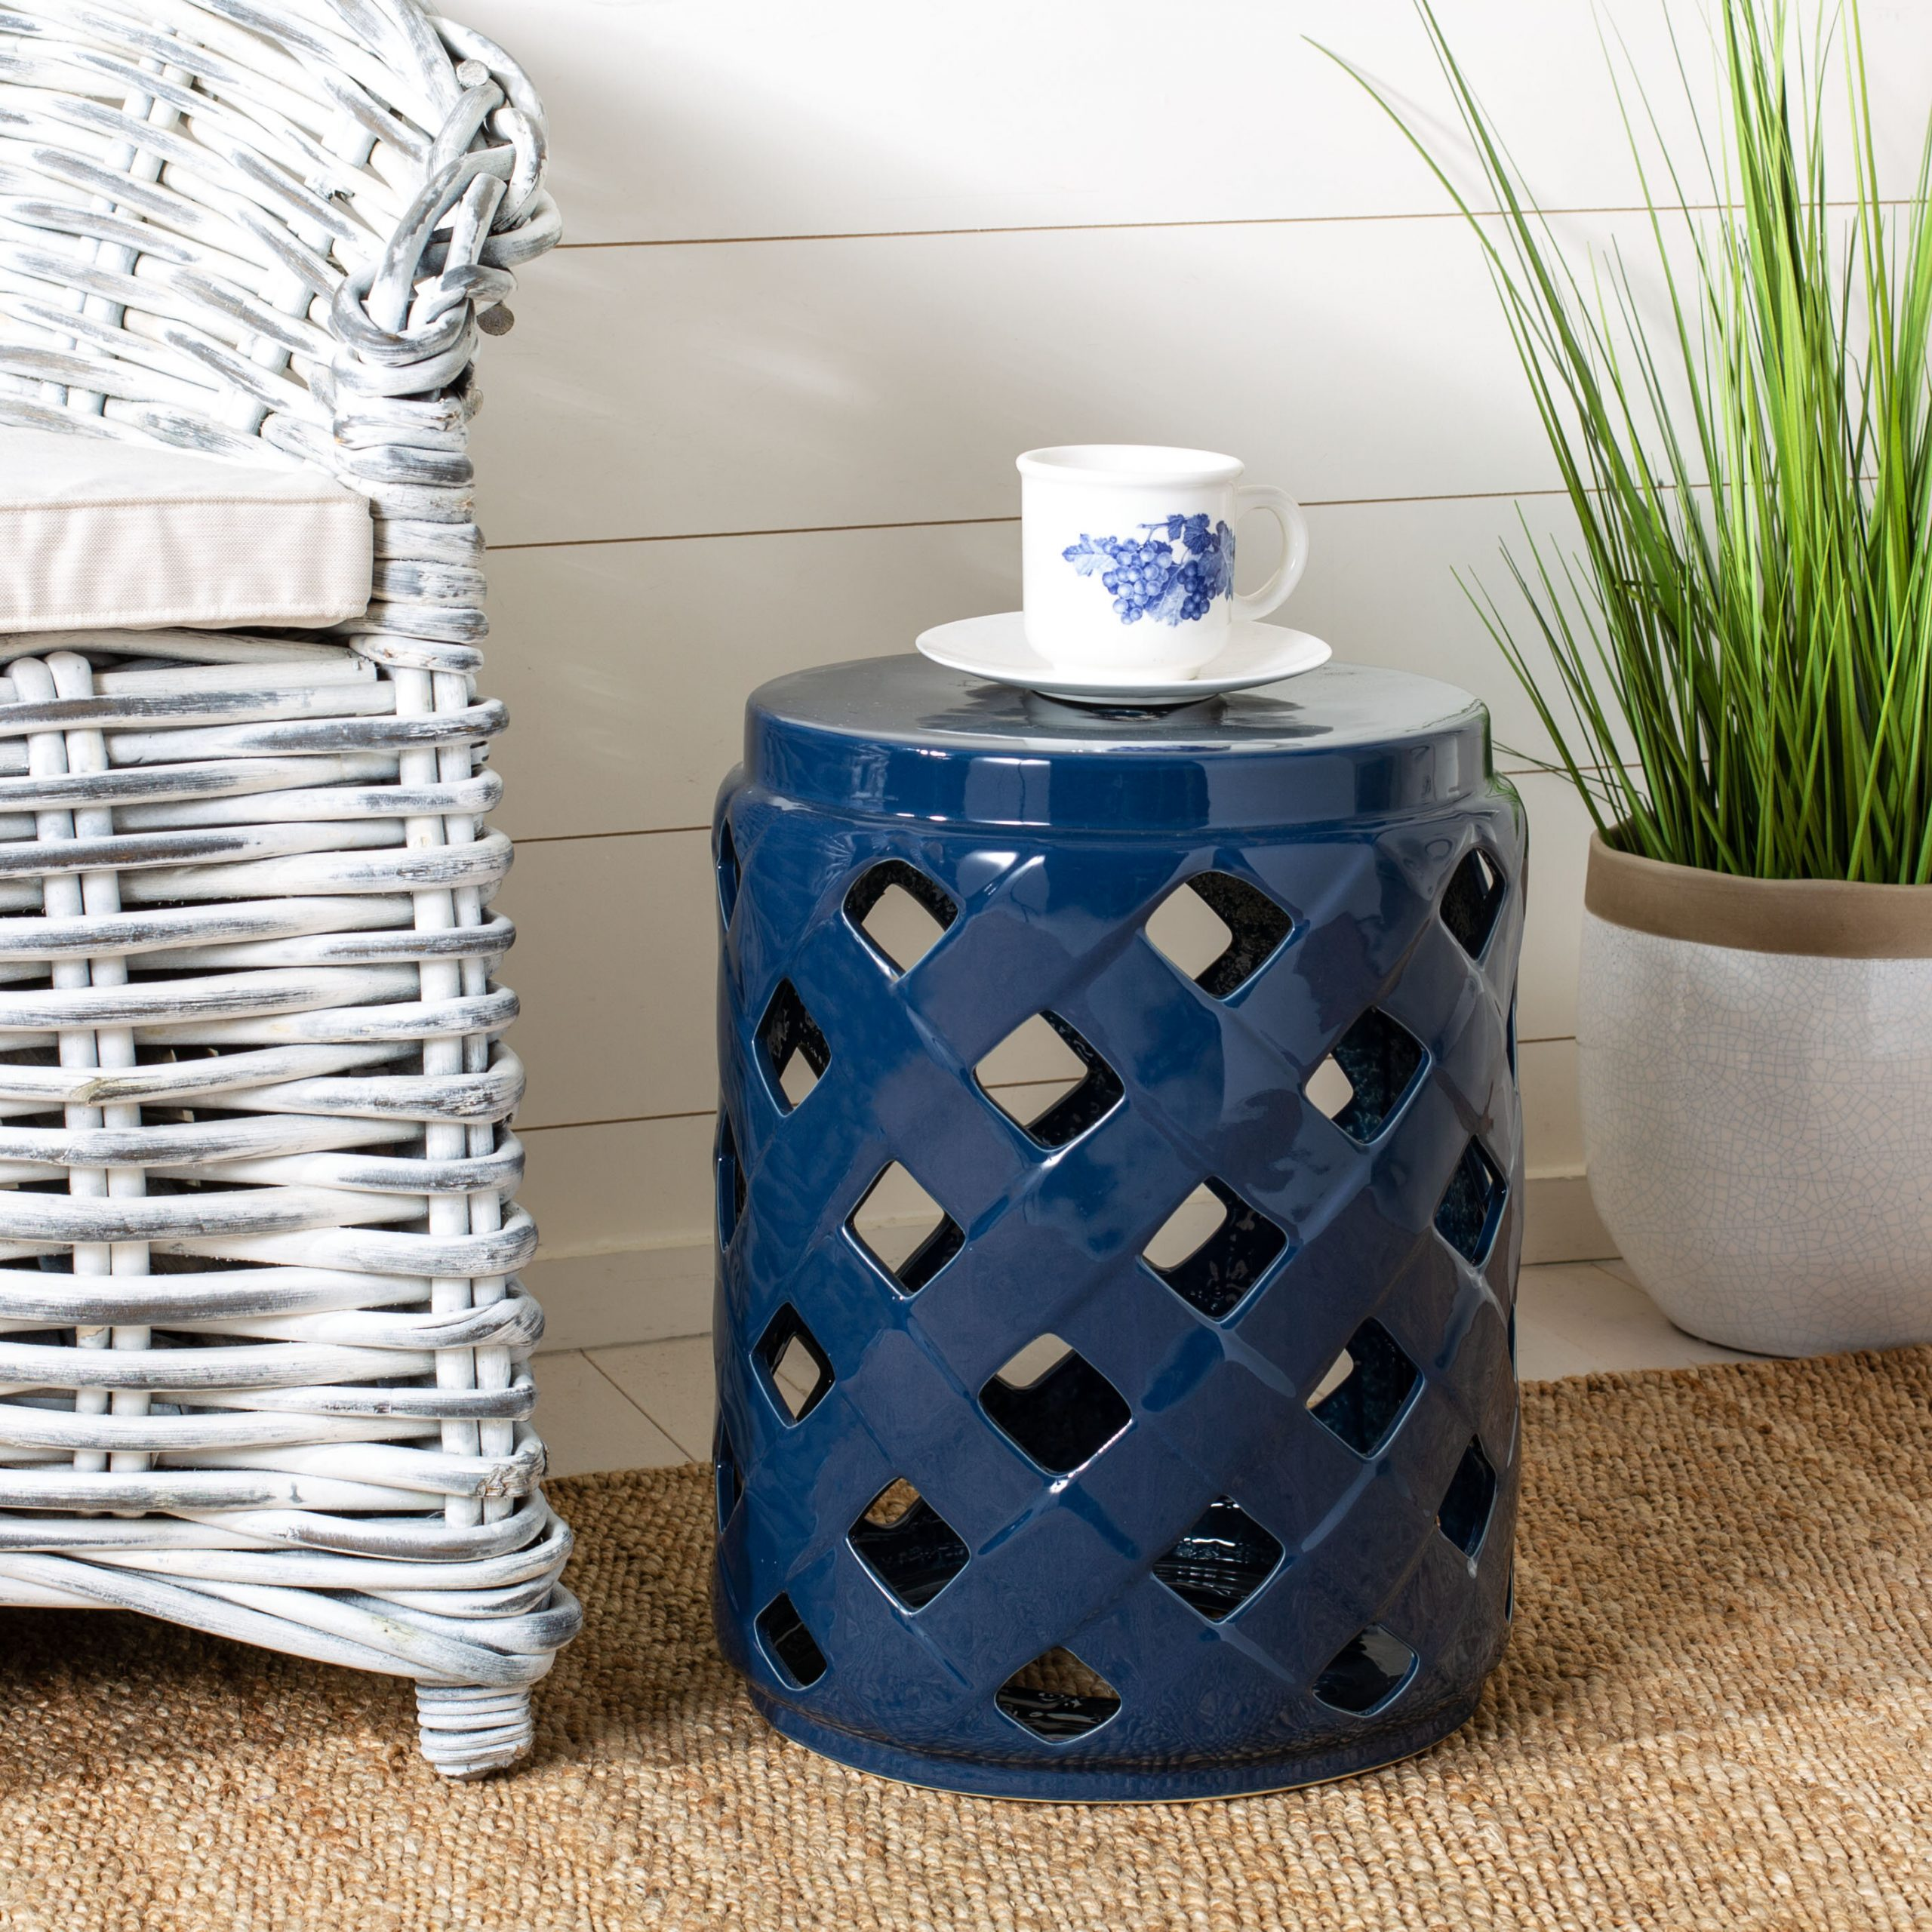 Blue Ceramic Garden Stools You'Ll Love In 2020 | Wayfair With Regard To Wurster Ceramic Drip Garden Stools (View 10 of 25)